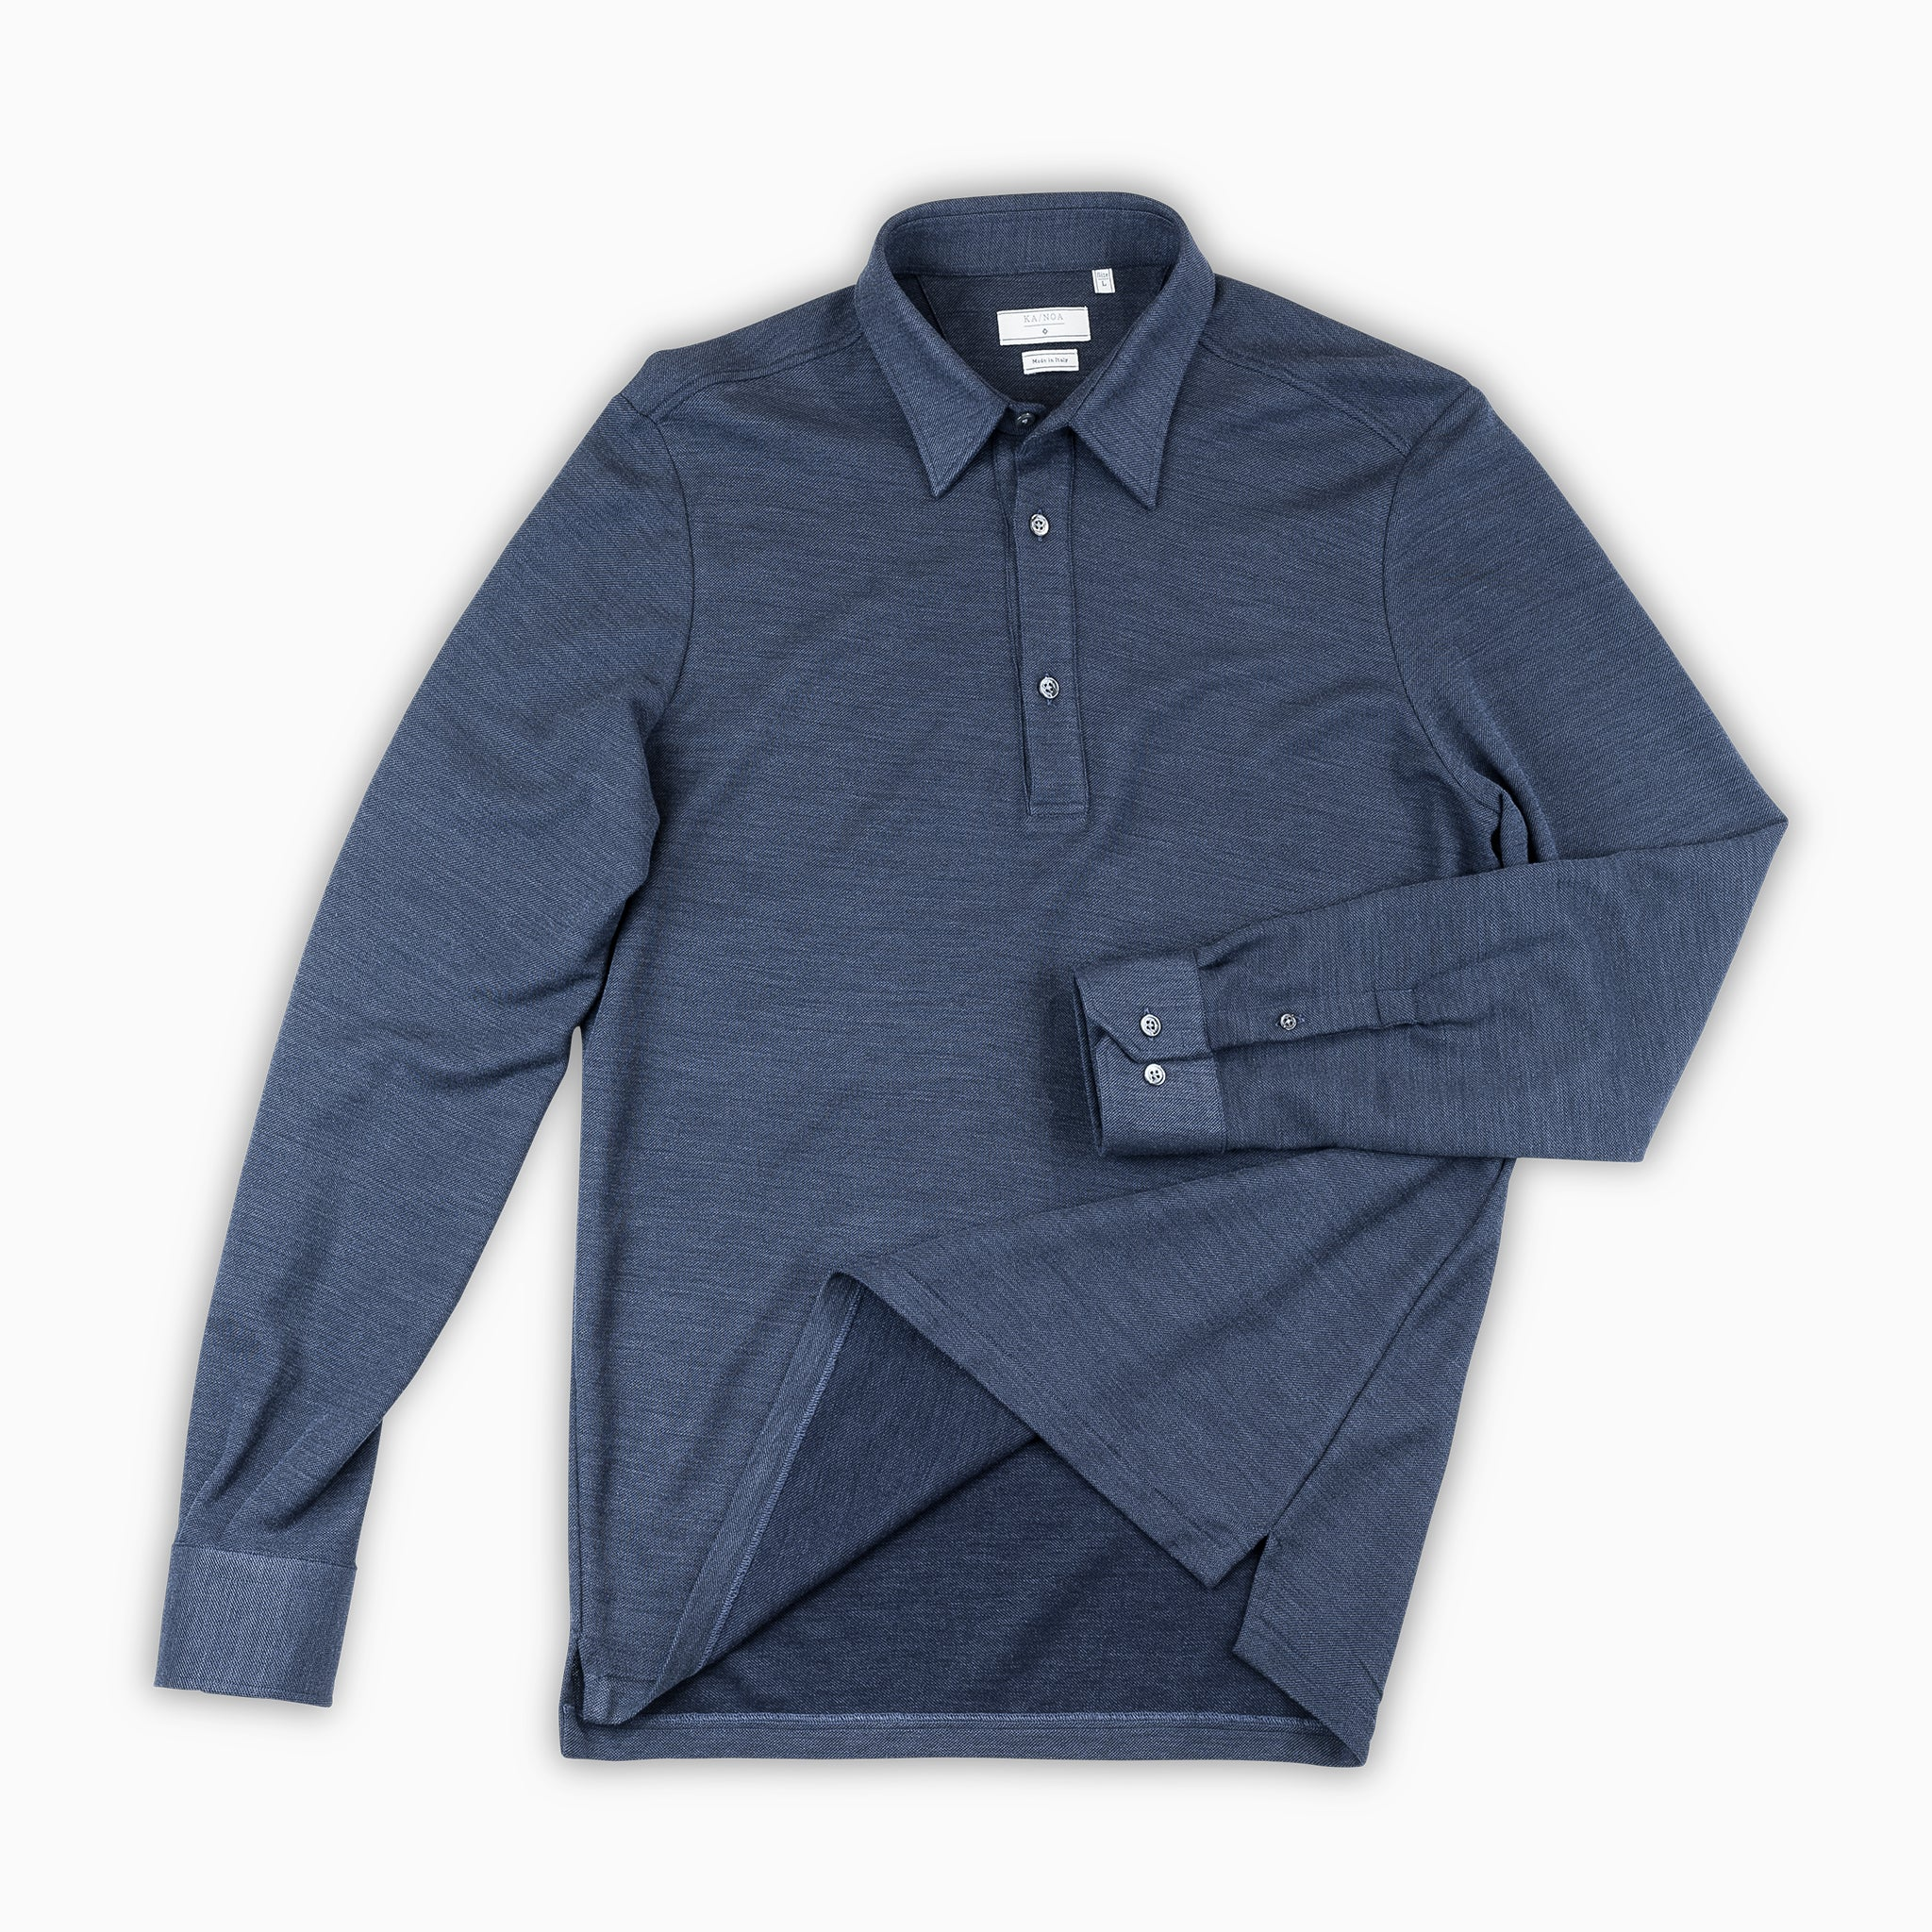 Jean Polo Shirt Silk and Cotton (dark blue)